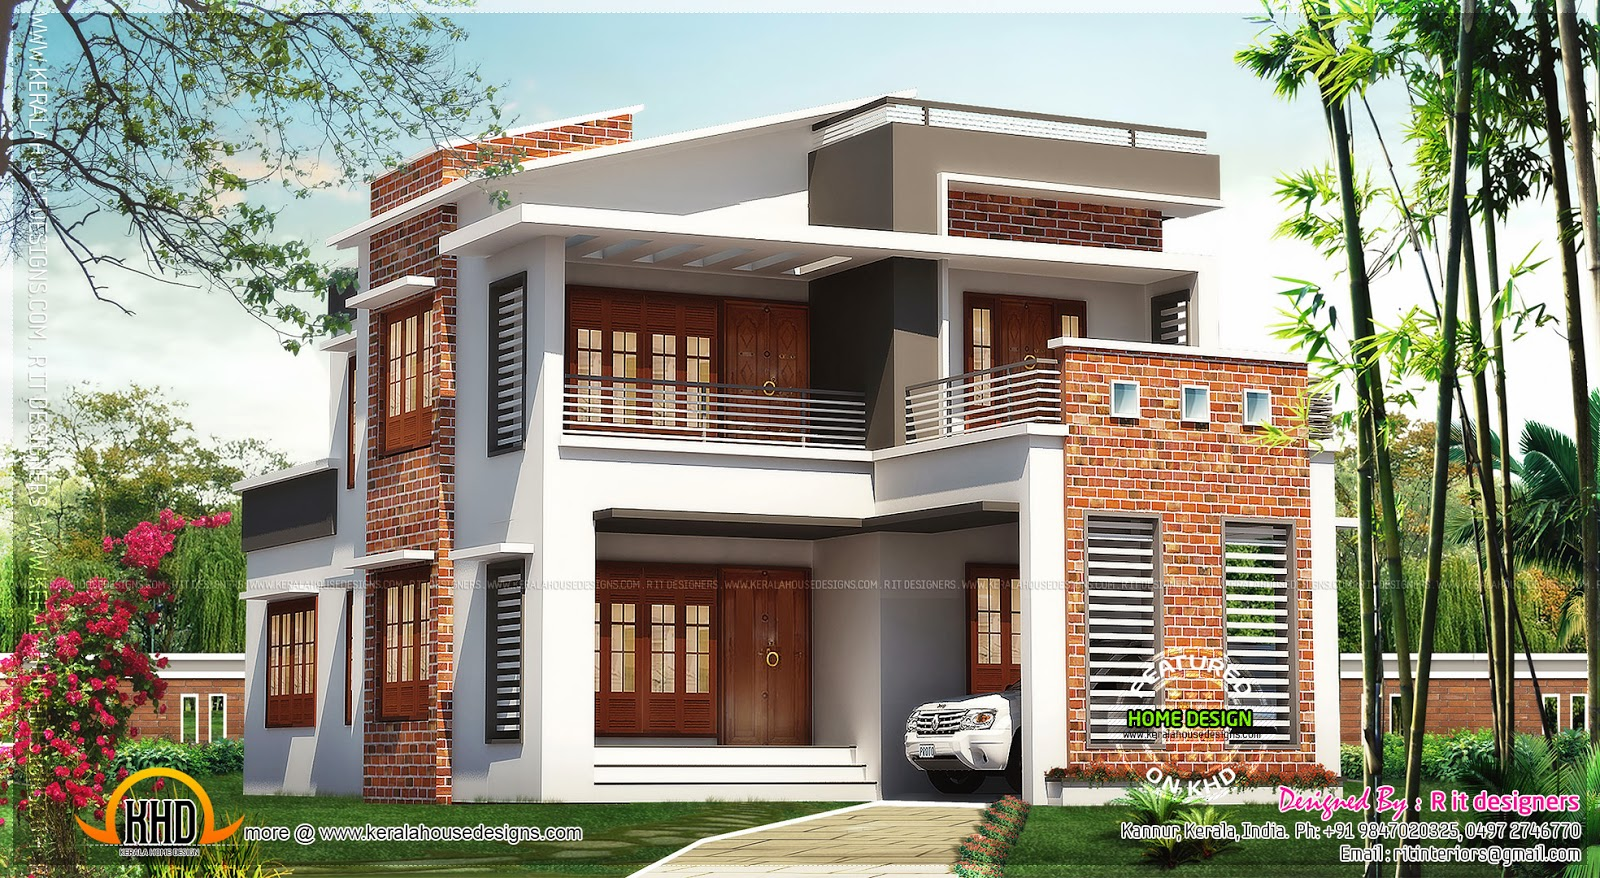 Brick Mix House Exterior Design Kerala Home Design And Floor Plans